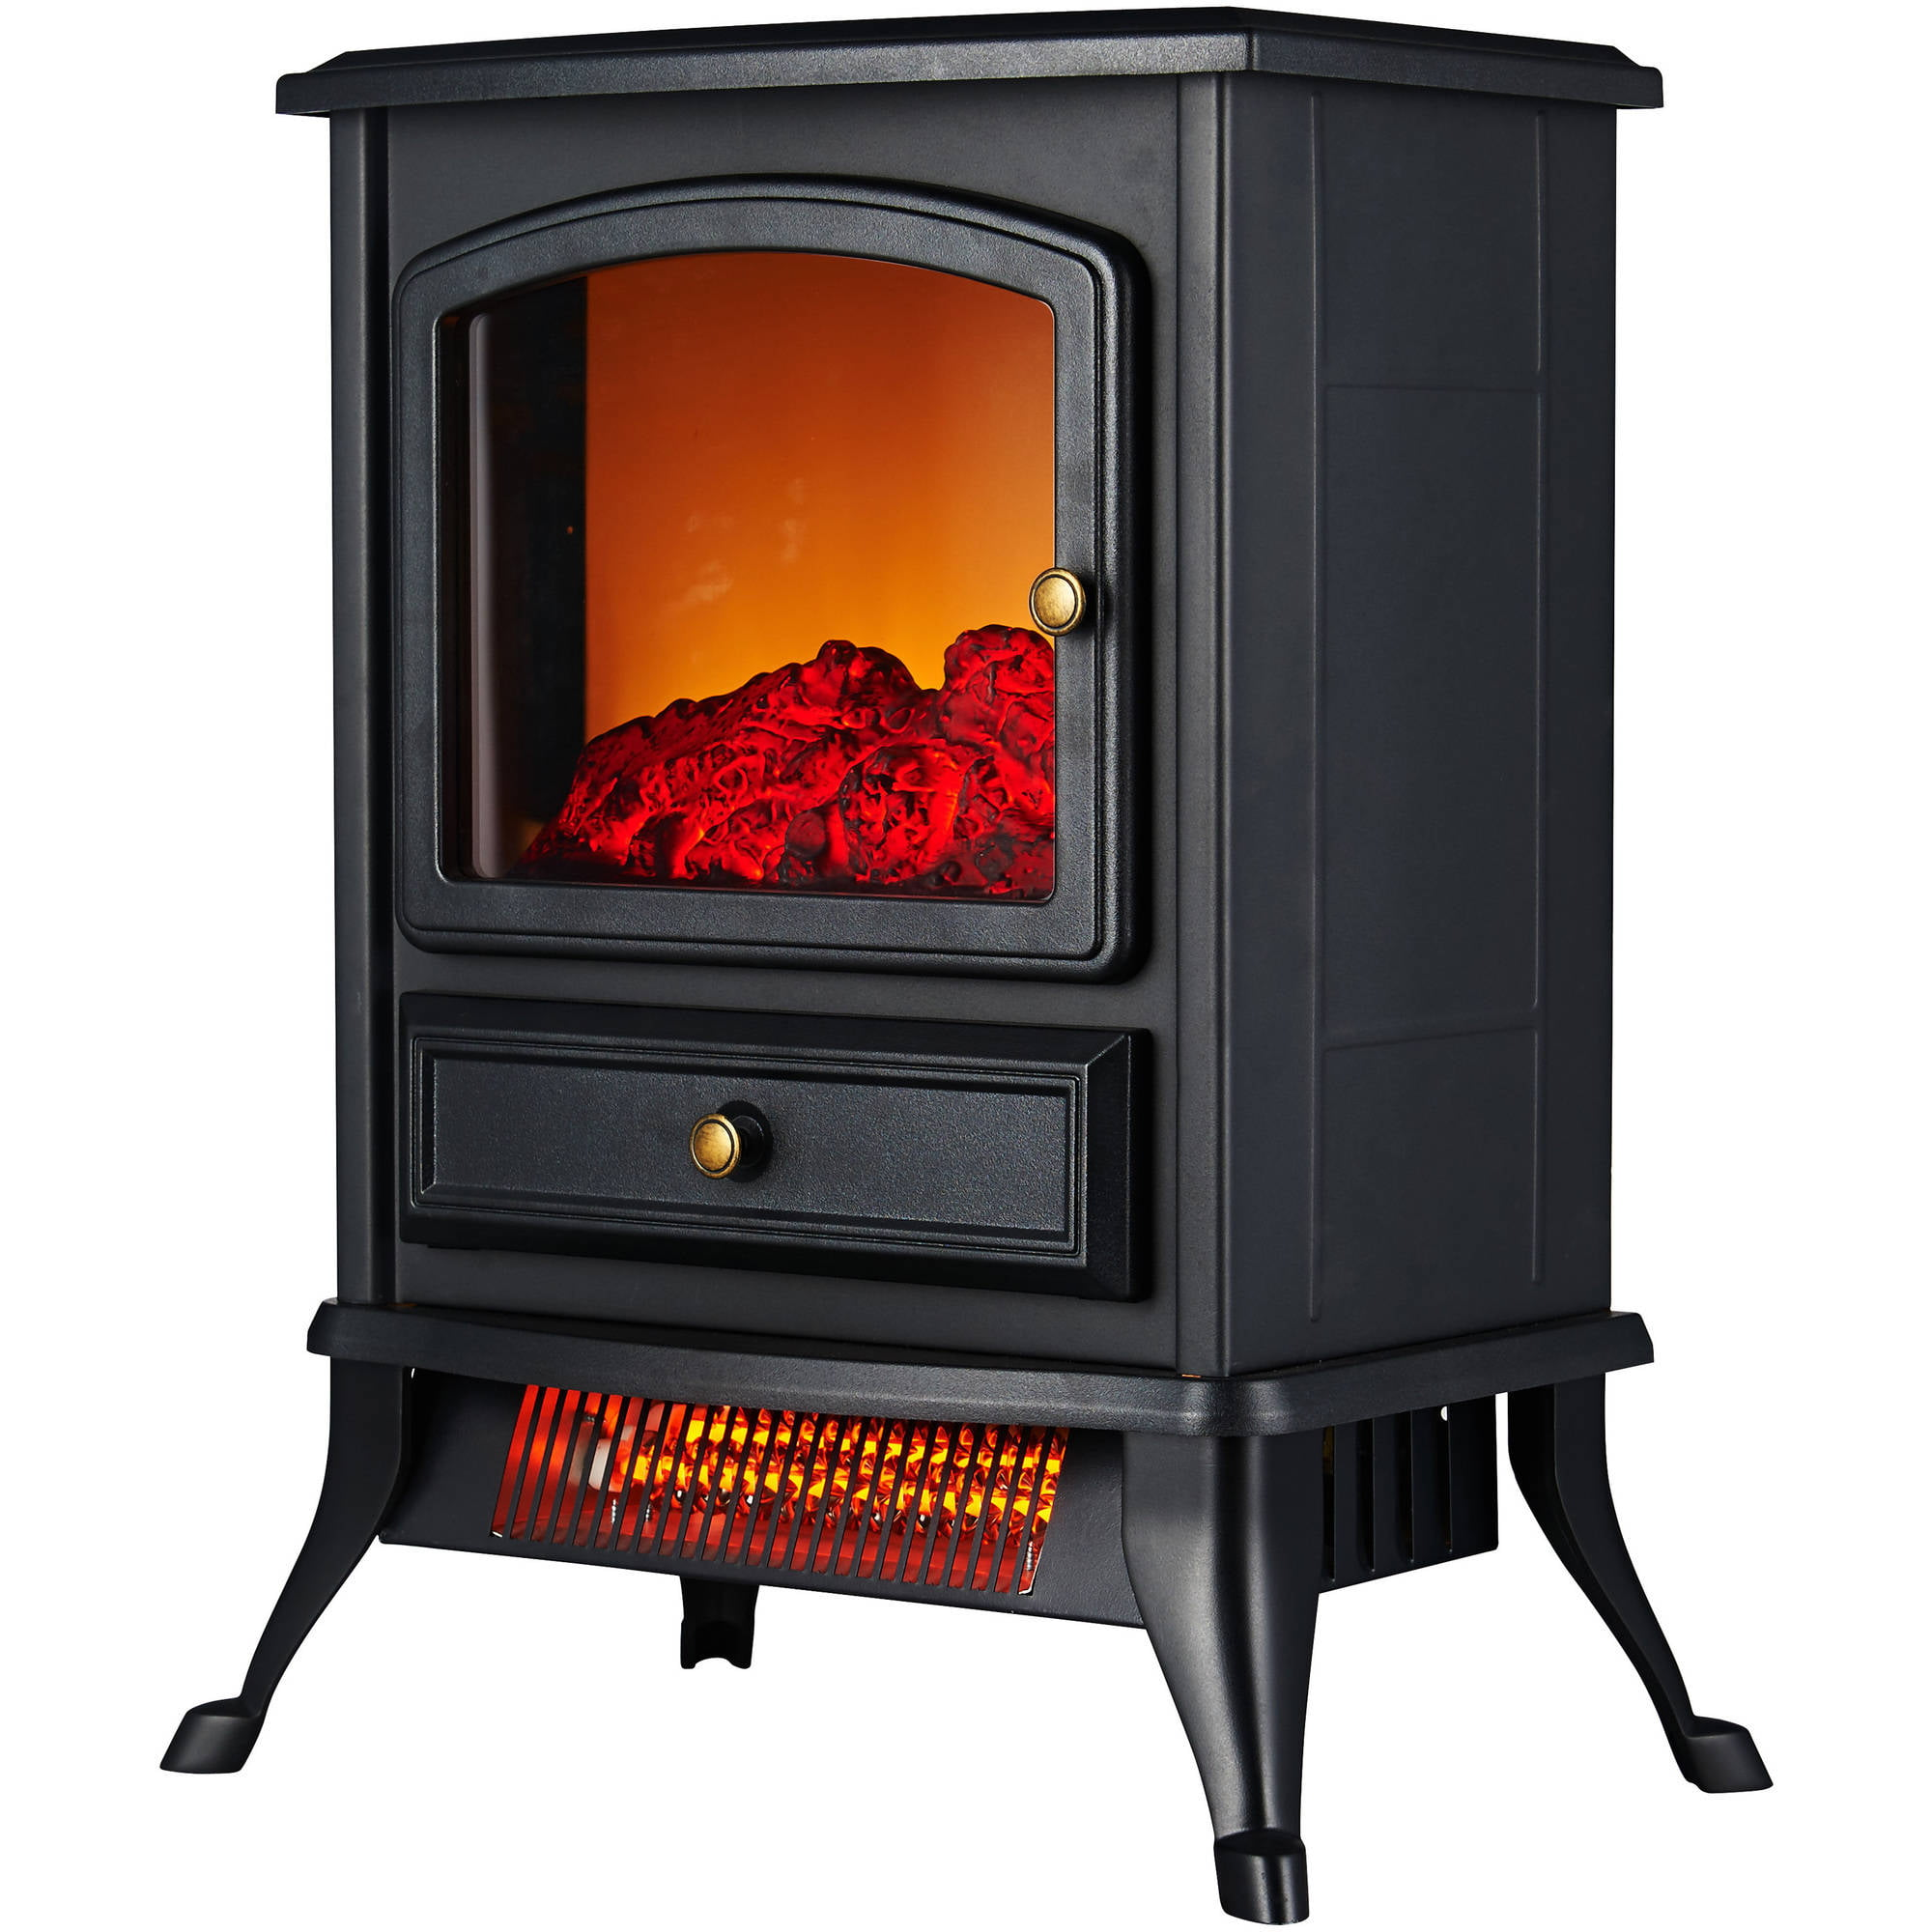 chimneyfree electric infrared quartz fireplace with remote 5 200